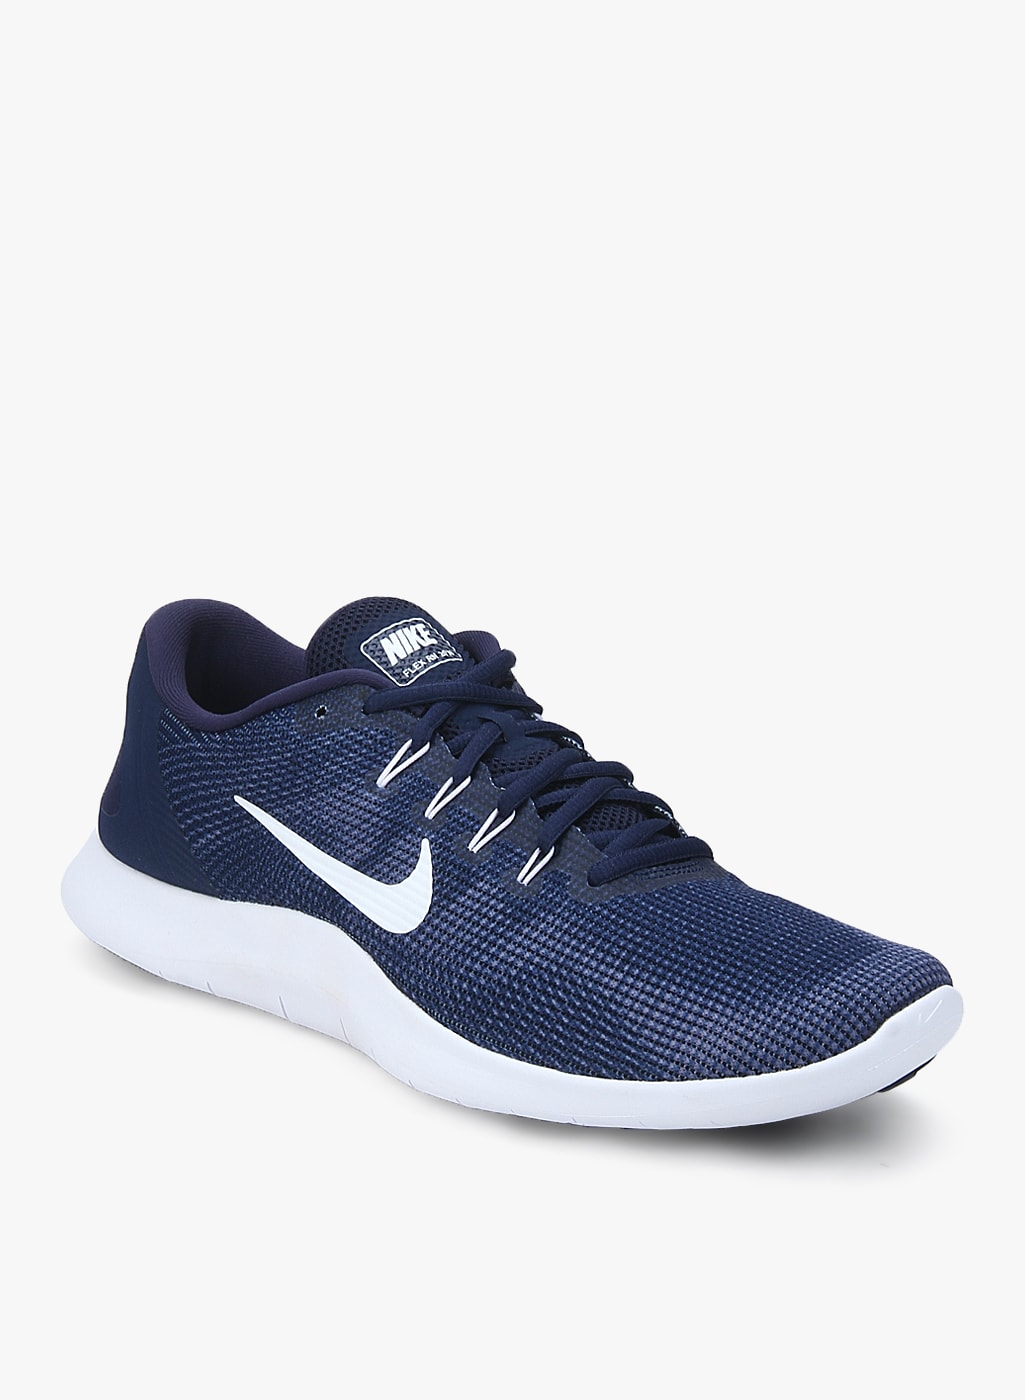 men football shoes nike buy men football shoes nike